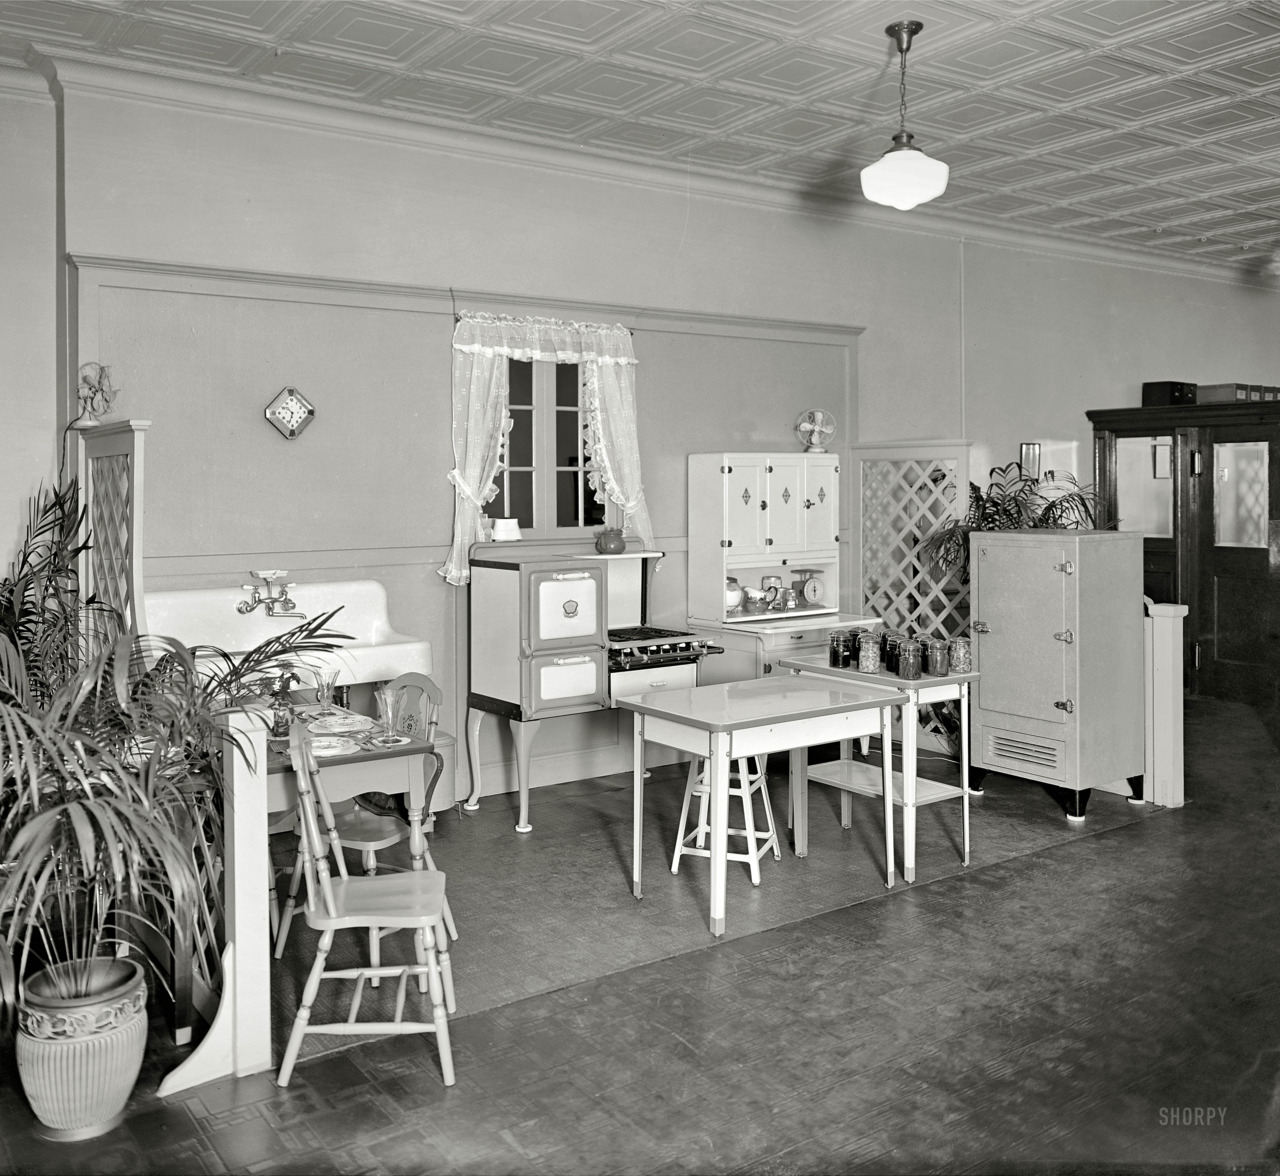 Woodward & Lothrop Kitchen , 1926 National Photo Company Collection